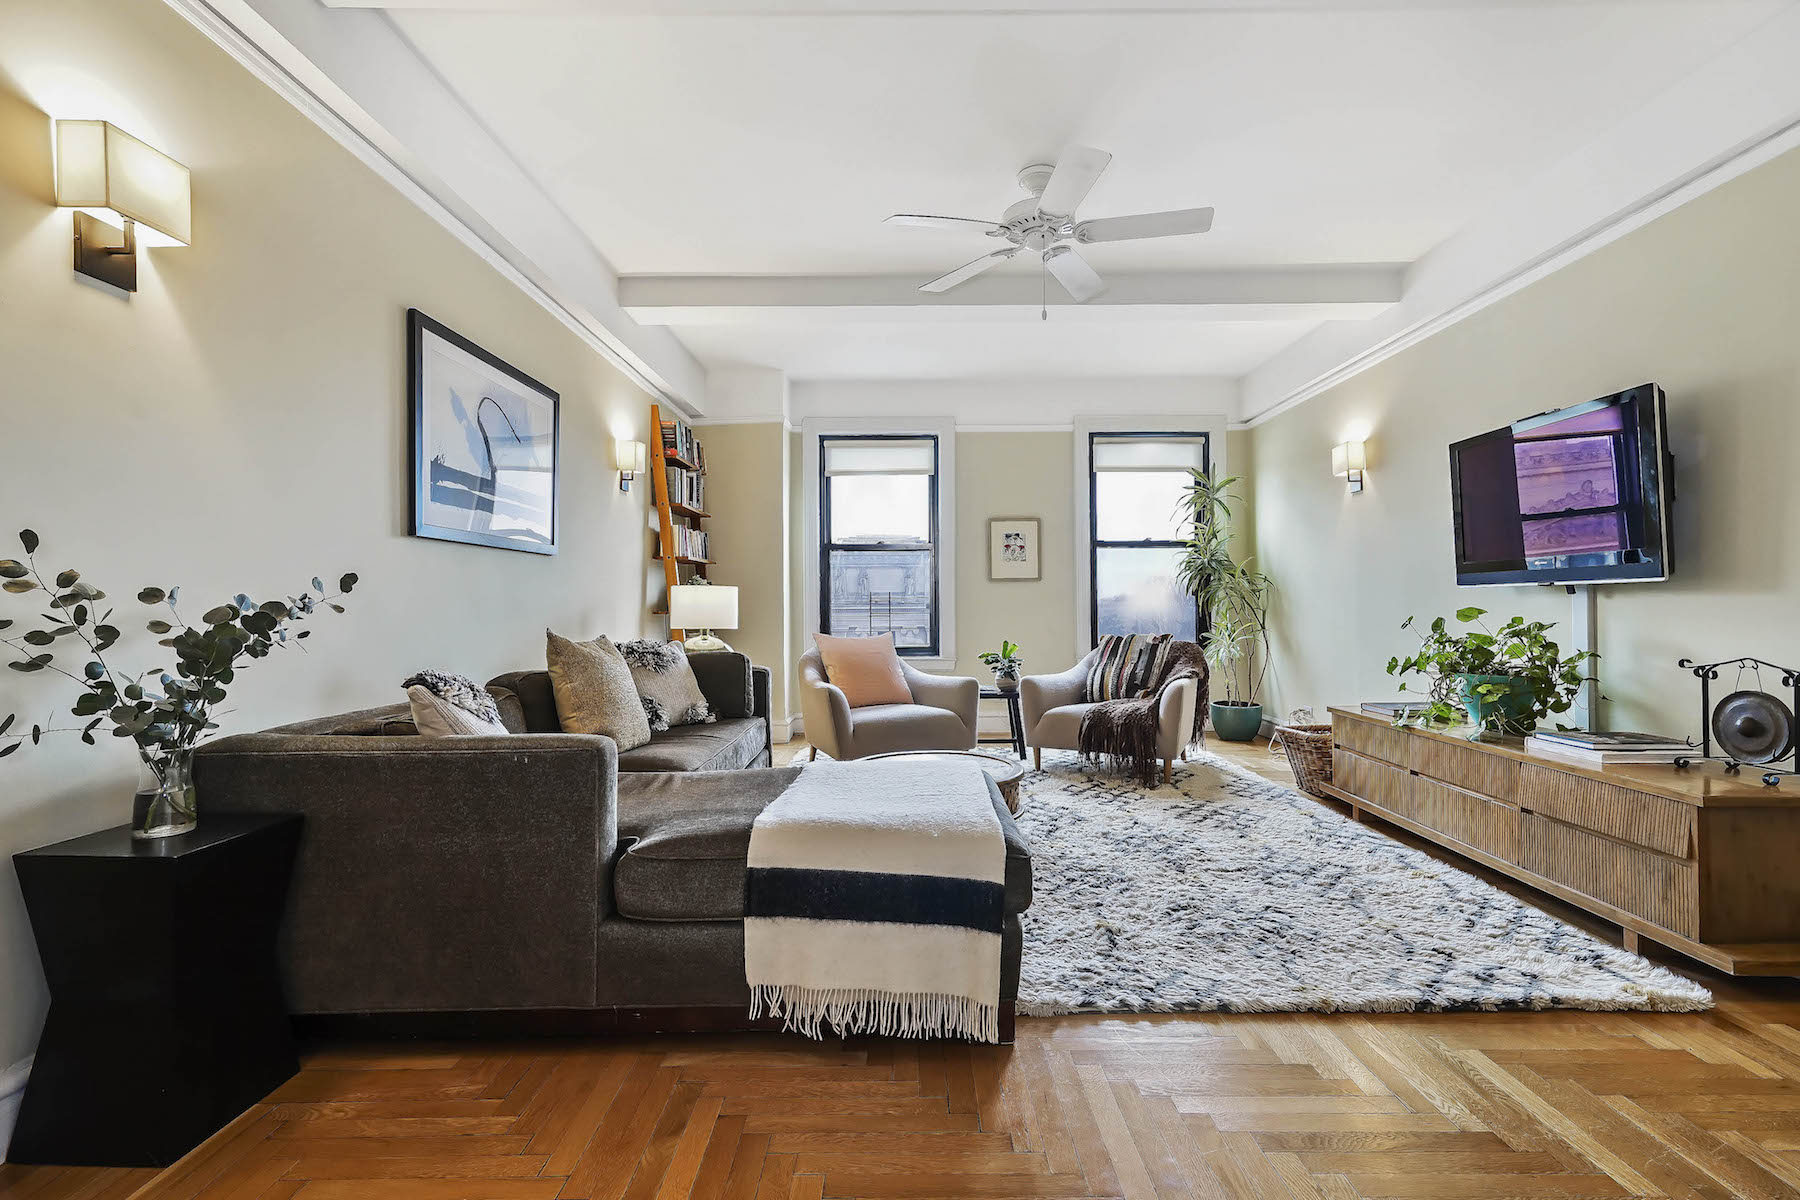 Co-op for Sale at 135 Eastern Parkway Apt 8F 135 Eastern Parkway Apt 8F Brooklyn, New York 11238 United States